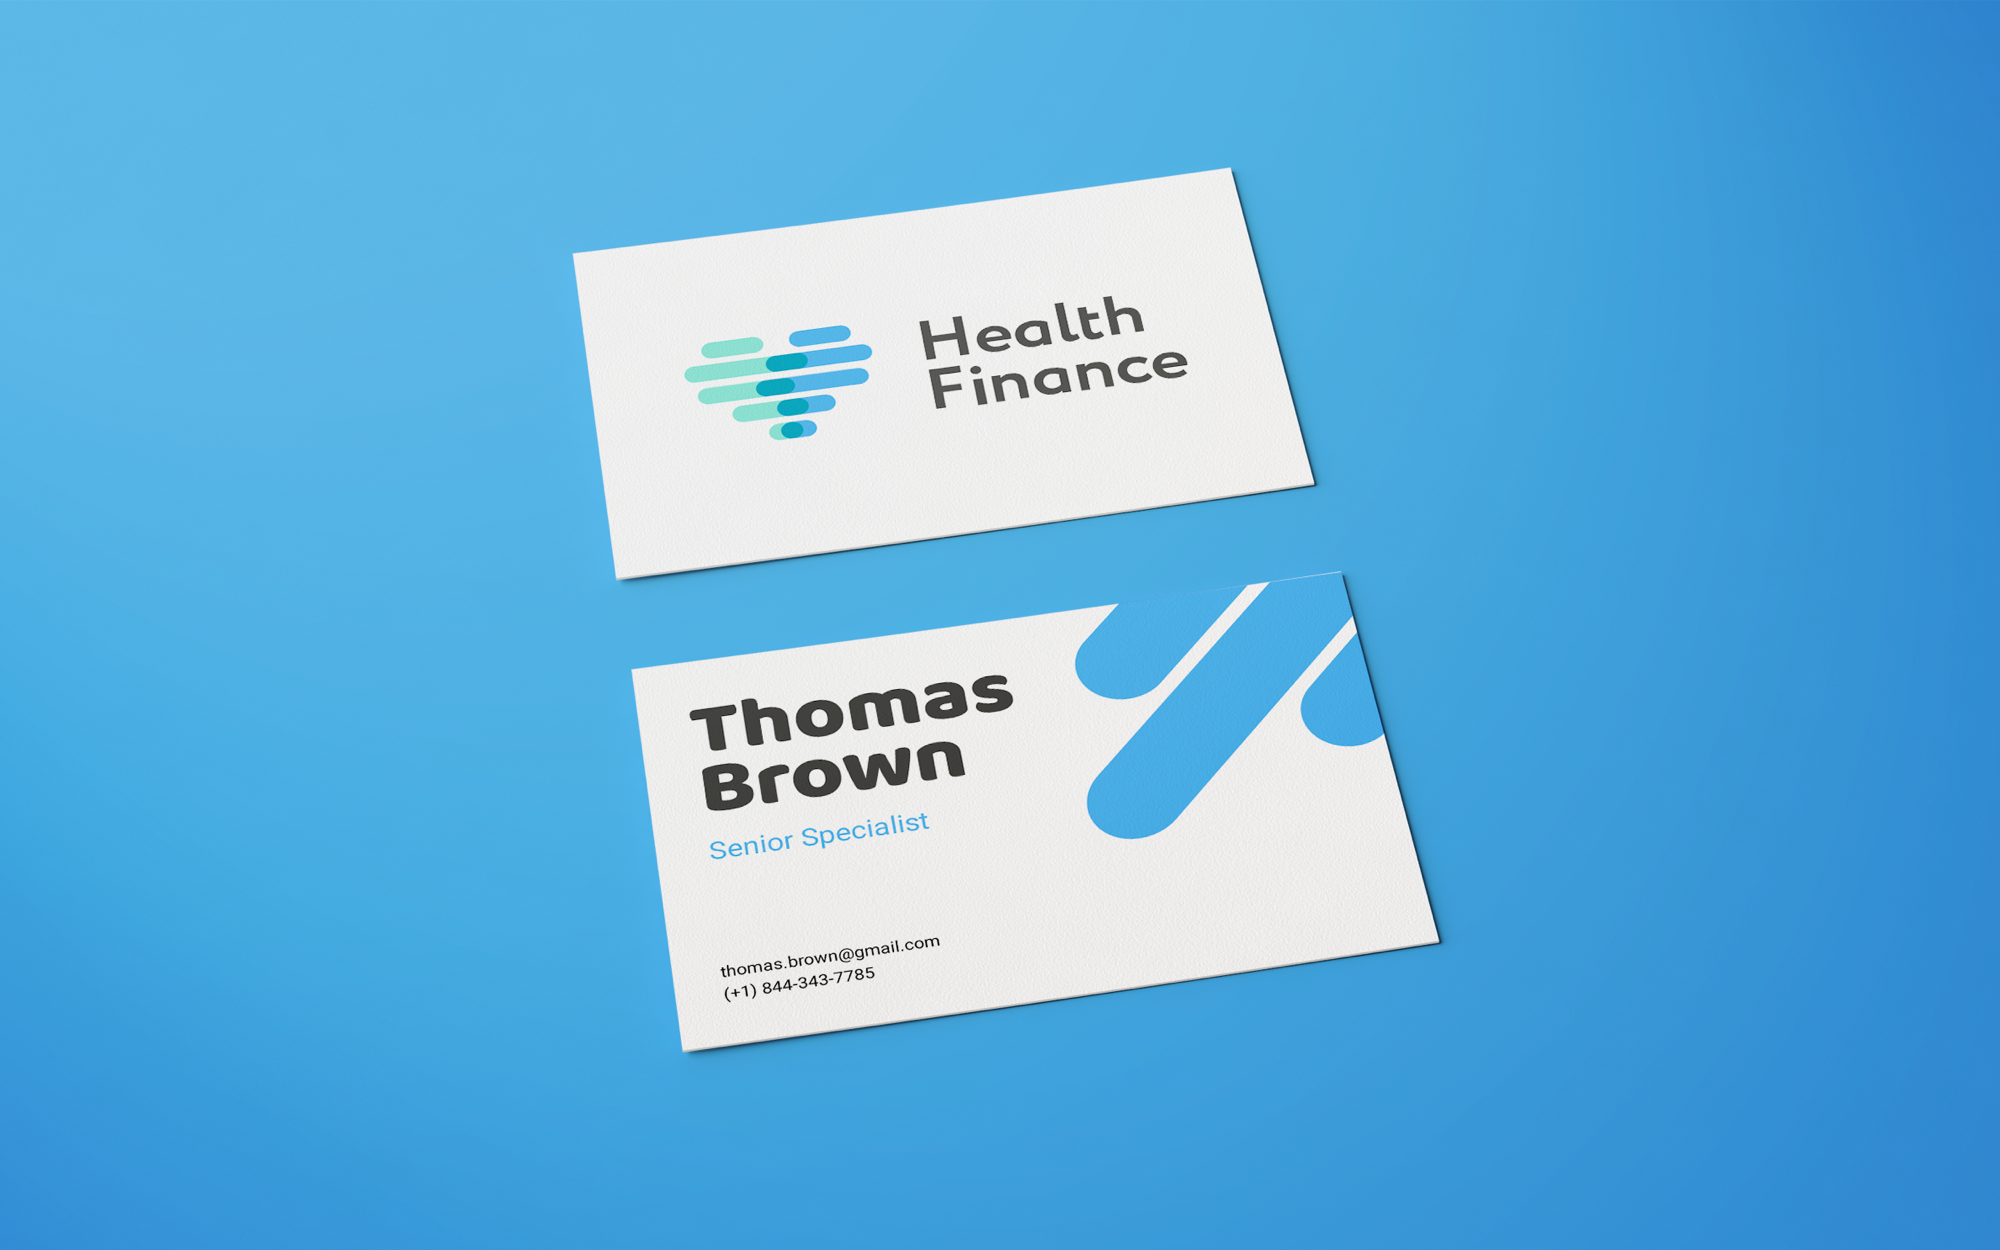 Business cards for health finance fintech startup